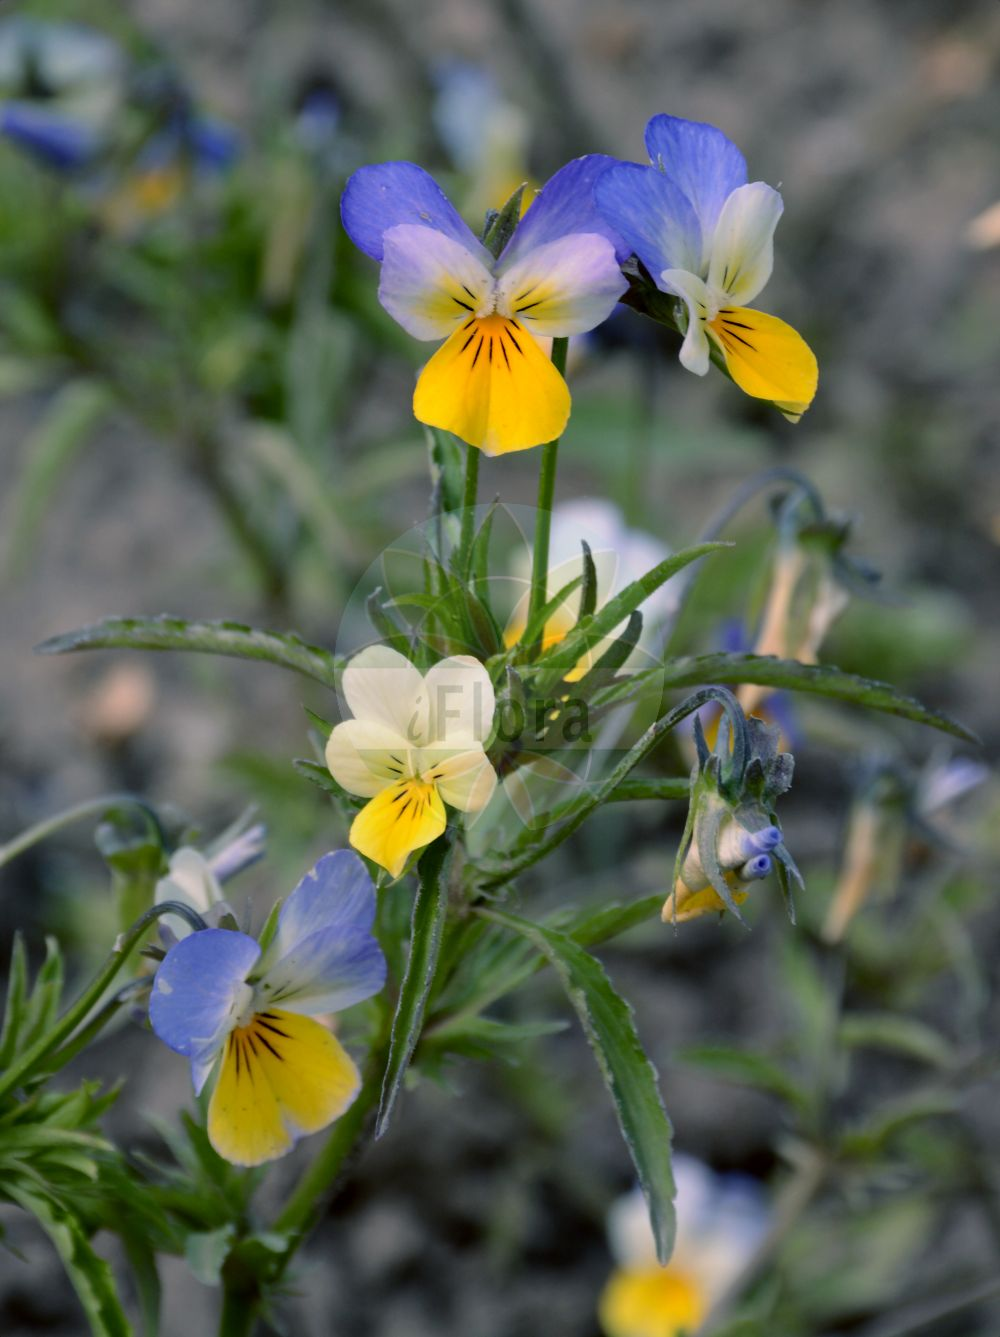 Foto von Viola tricolor (Wildes Stiefmuetterchen - Wild Pansy). Das Bild zeigt Blatt und Bluete. Das Foto wurde in Berlin, Deutschland aufgenommen. ---- Photo of Viola tricolor (Wildes Stiefmuetterchen - Wild Pansy).The image is showing leaf and flower.The picture was taken in Berlin, Germany. (Viola tricolor,Wildes Stiefmuetterchen,Wild Pansy,Viola kupfferi,Viola luteola,Viola nemausensis,subsp. faeroeensis,Heart's Ease,Johnny Jumpup,Pansy,Wild Violet,Viola,Veilchen,violet,Violaceae,Veilchengewaechse,Violet family,Blatt,Bluete,leaf,flower)